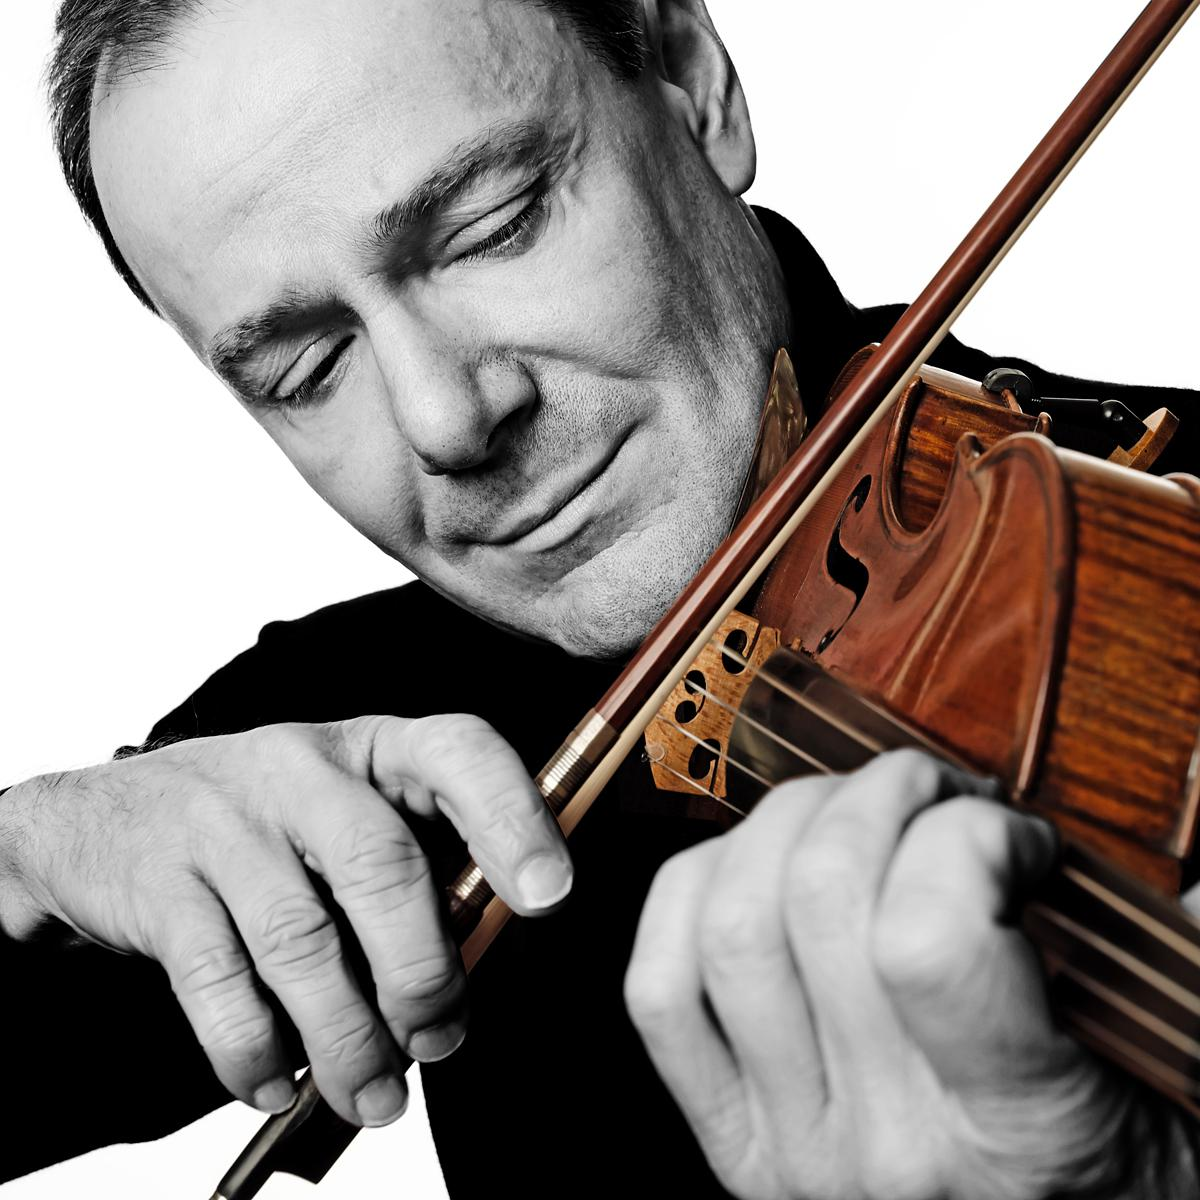 Portrait of classical musician Philippe Honore by London creative photographer Julian Hanford